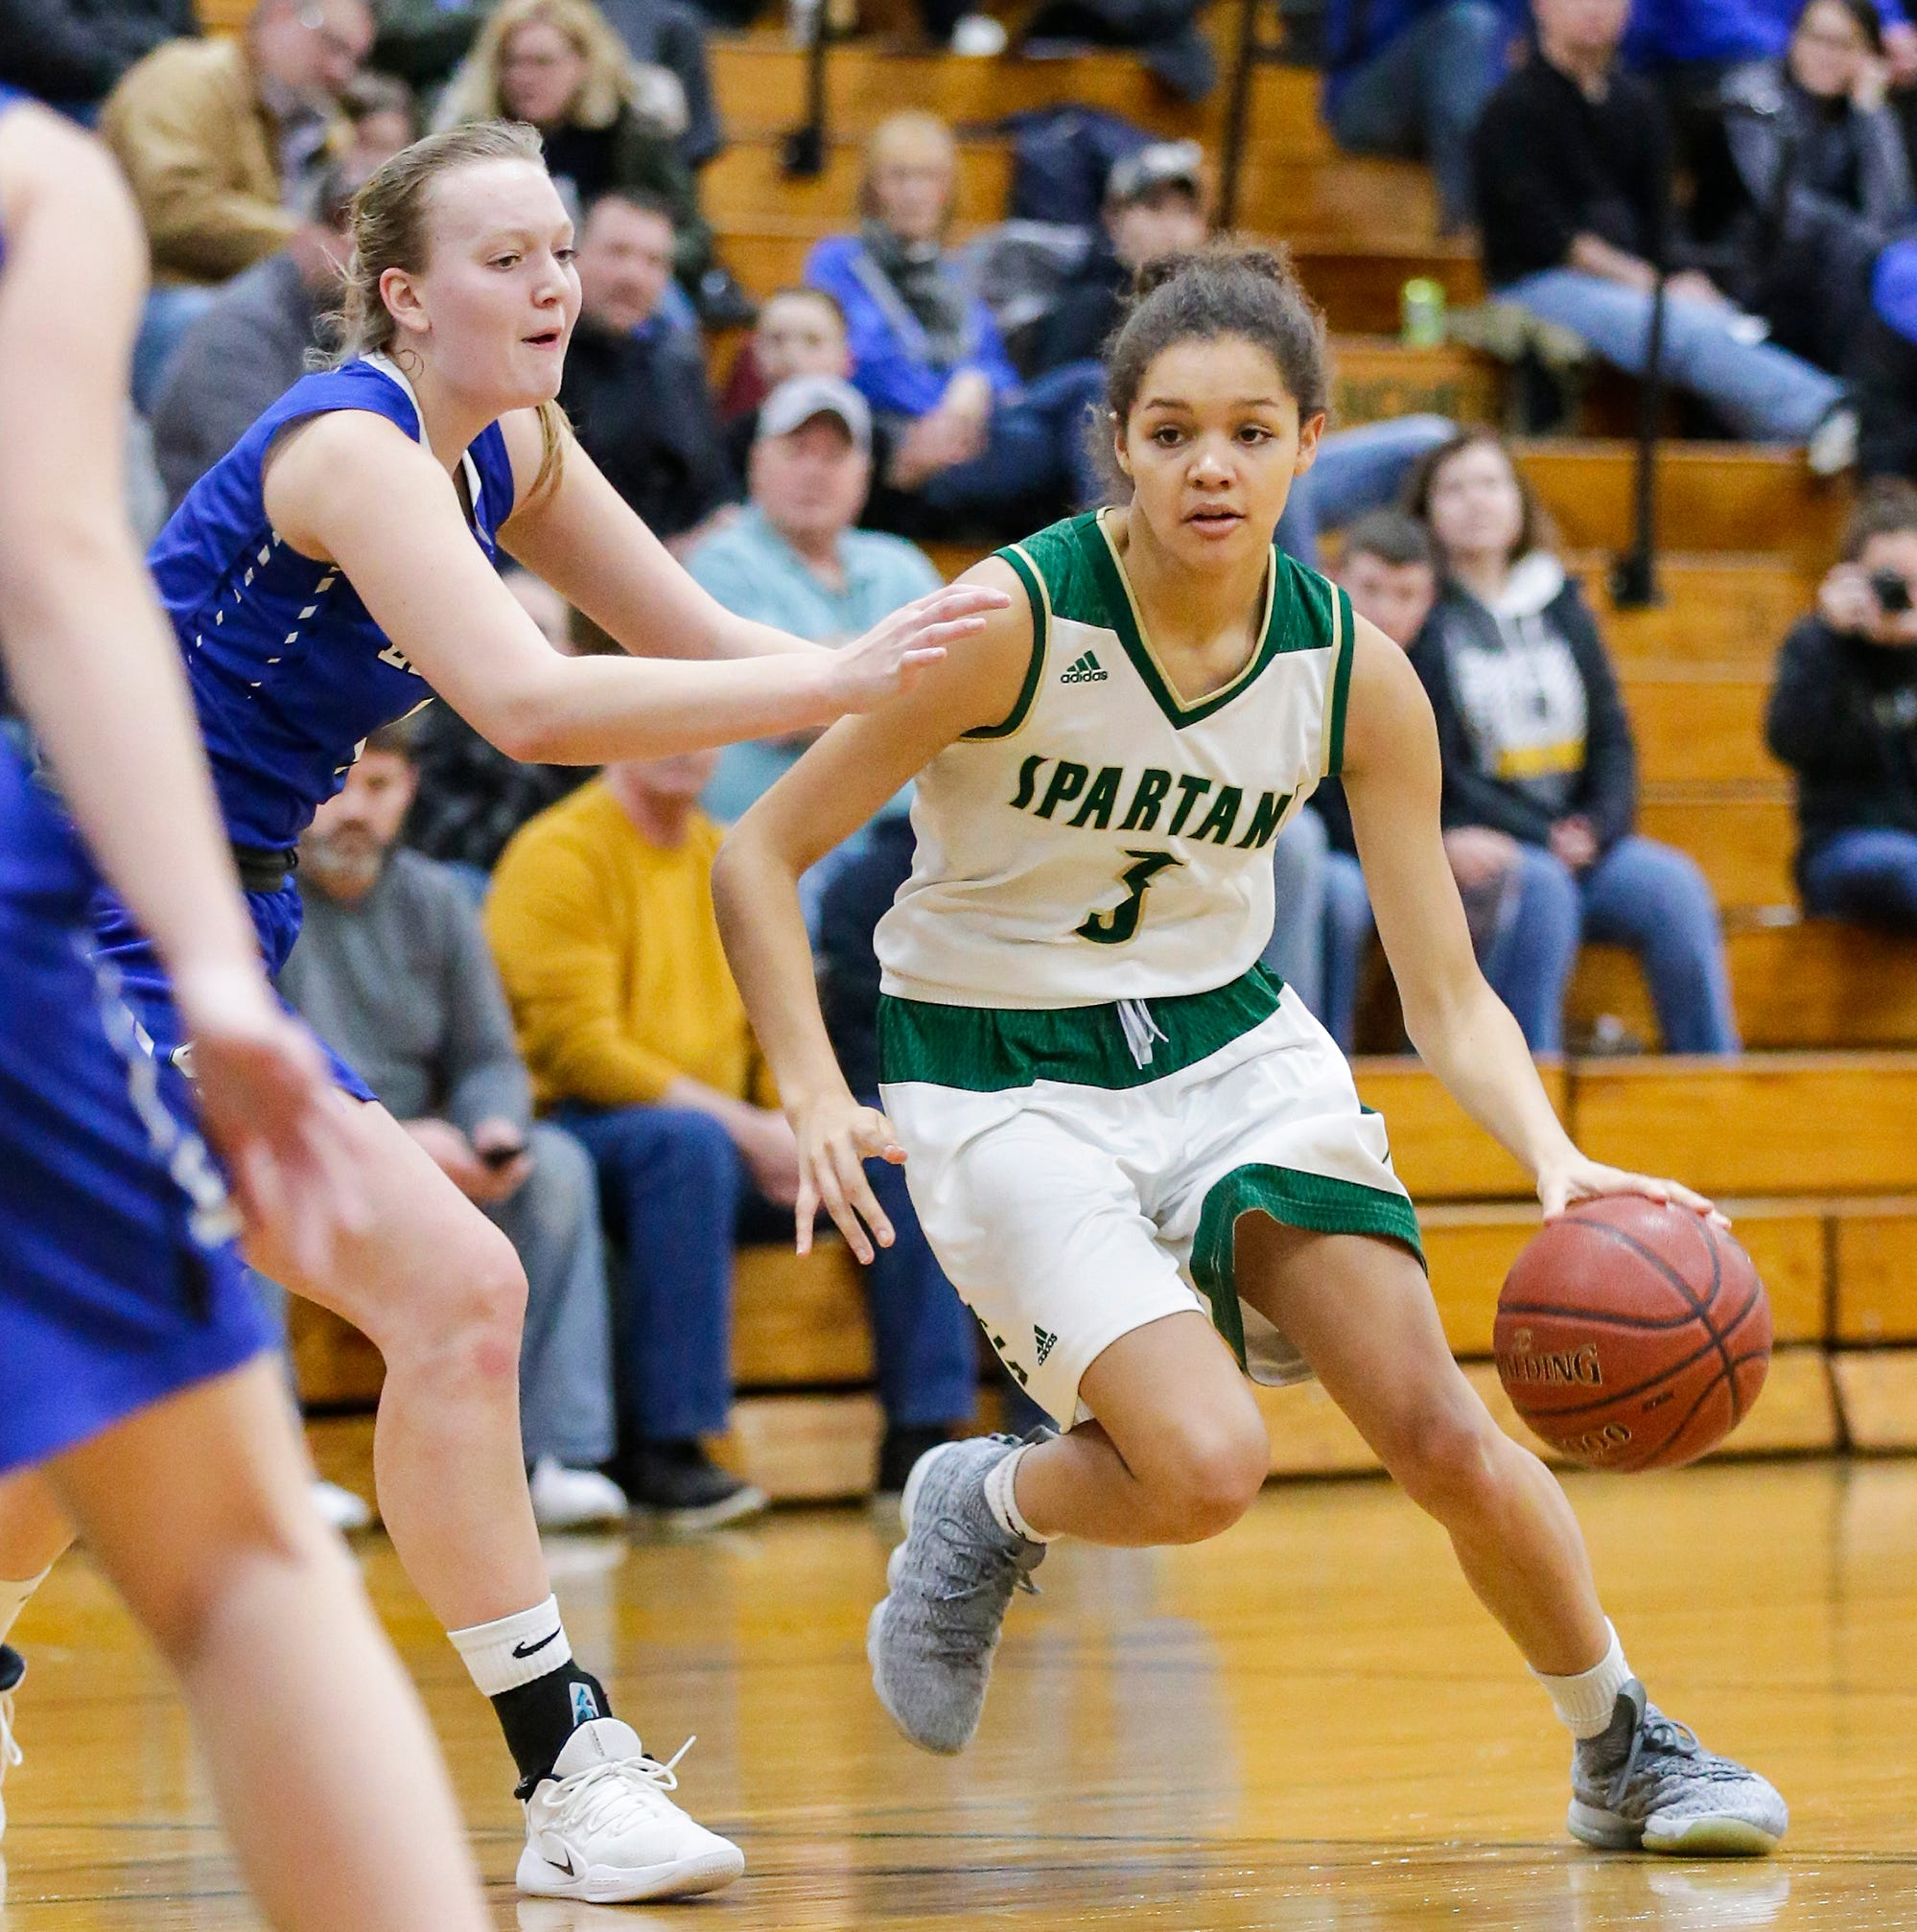 WIAA girls basketball: Laconia makes history with first trip to state